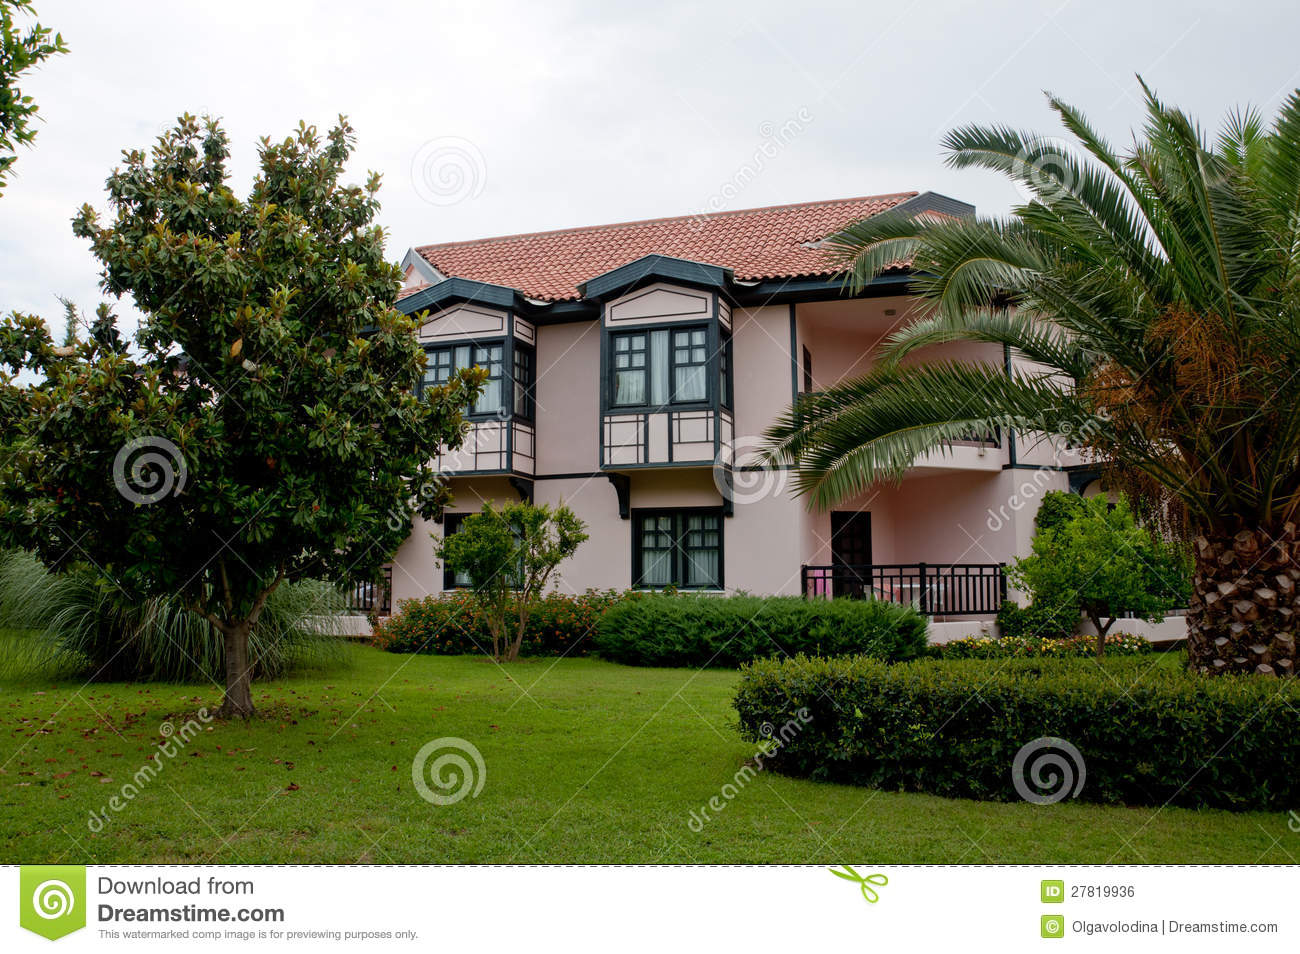 German Style House With Tropical Garden Royalty Free Stock